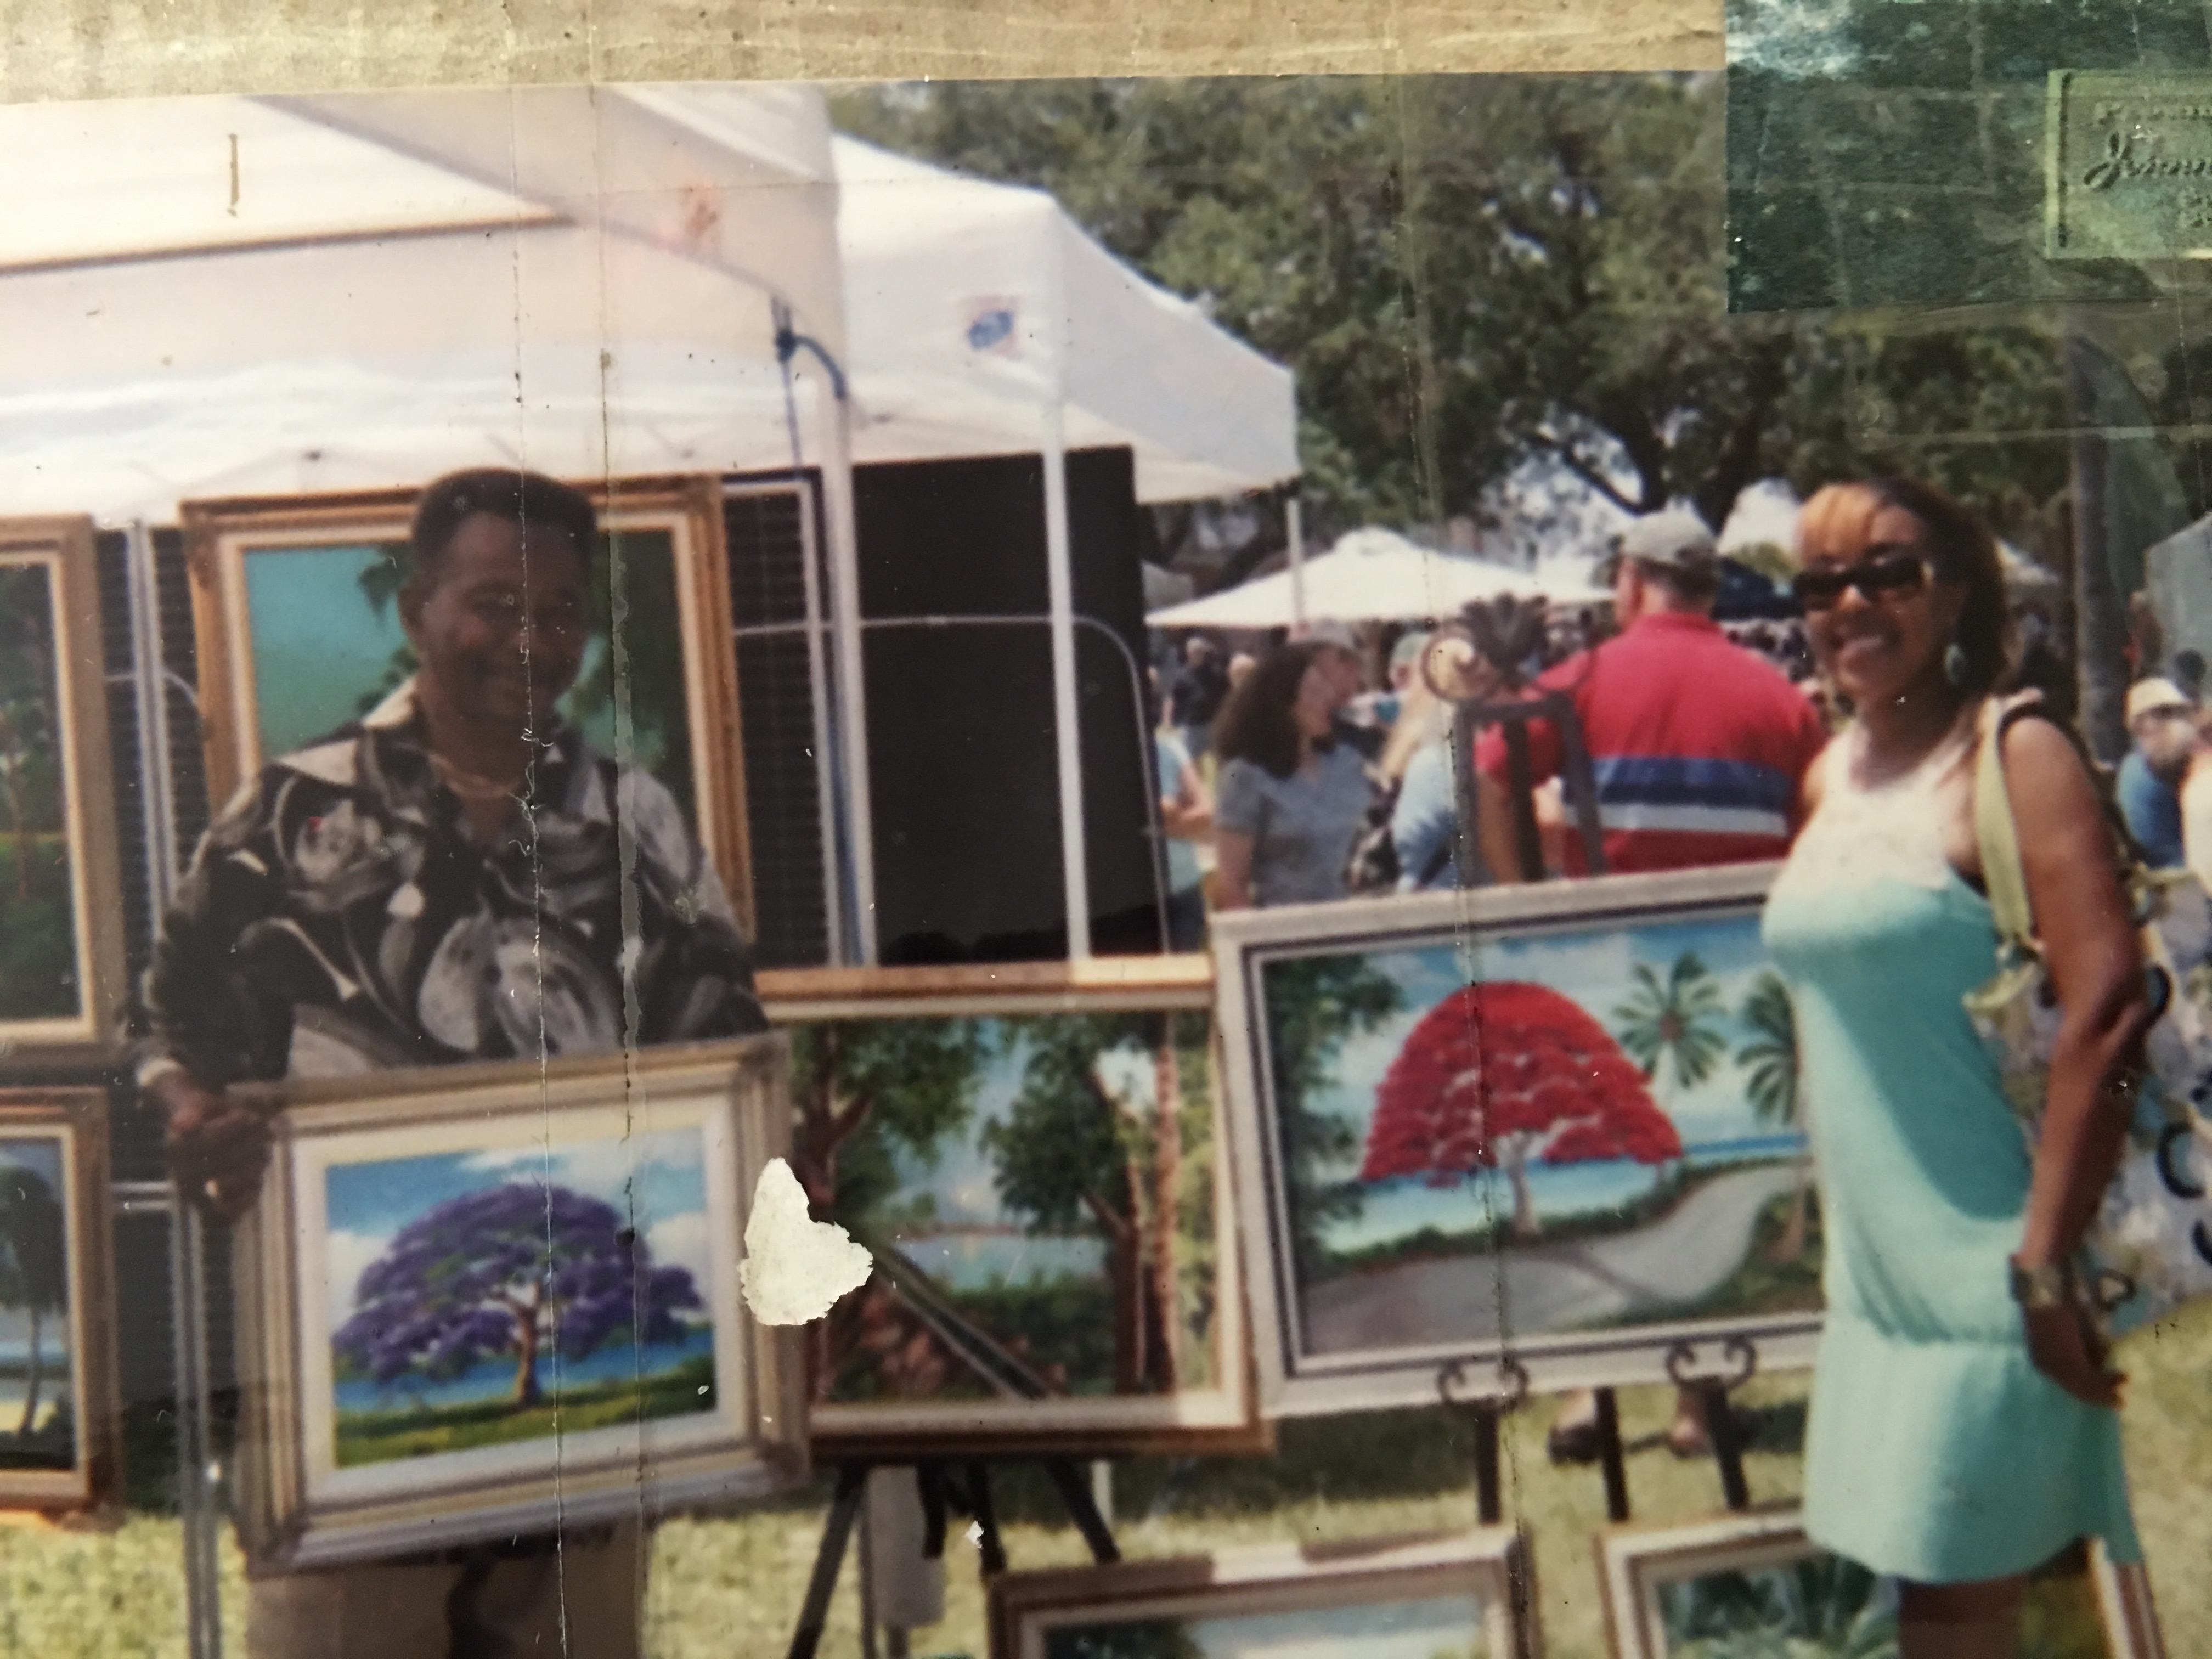 Highwaymen painters James Gibson and AJ Brown are a part of the Highwaymen Heritage Trail in St. Lucie County Florida